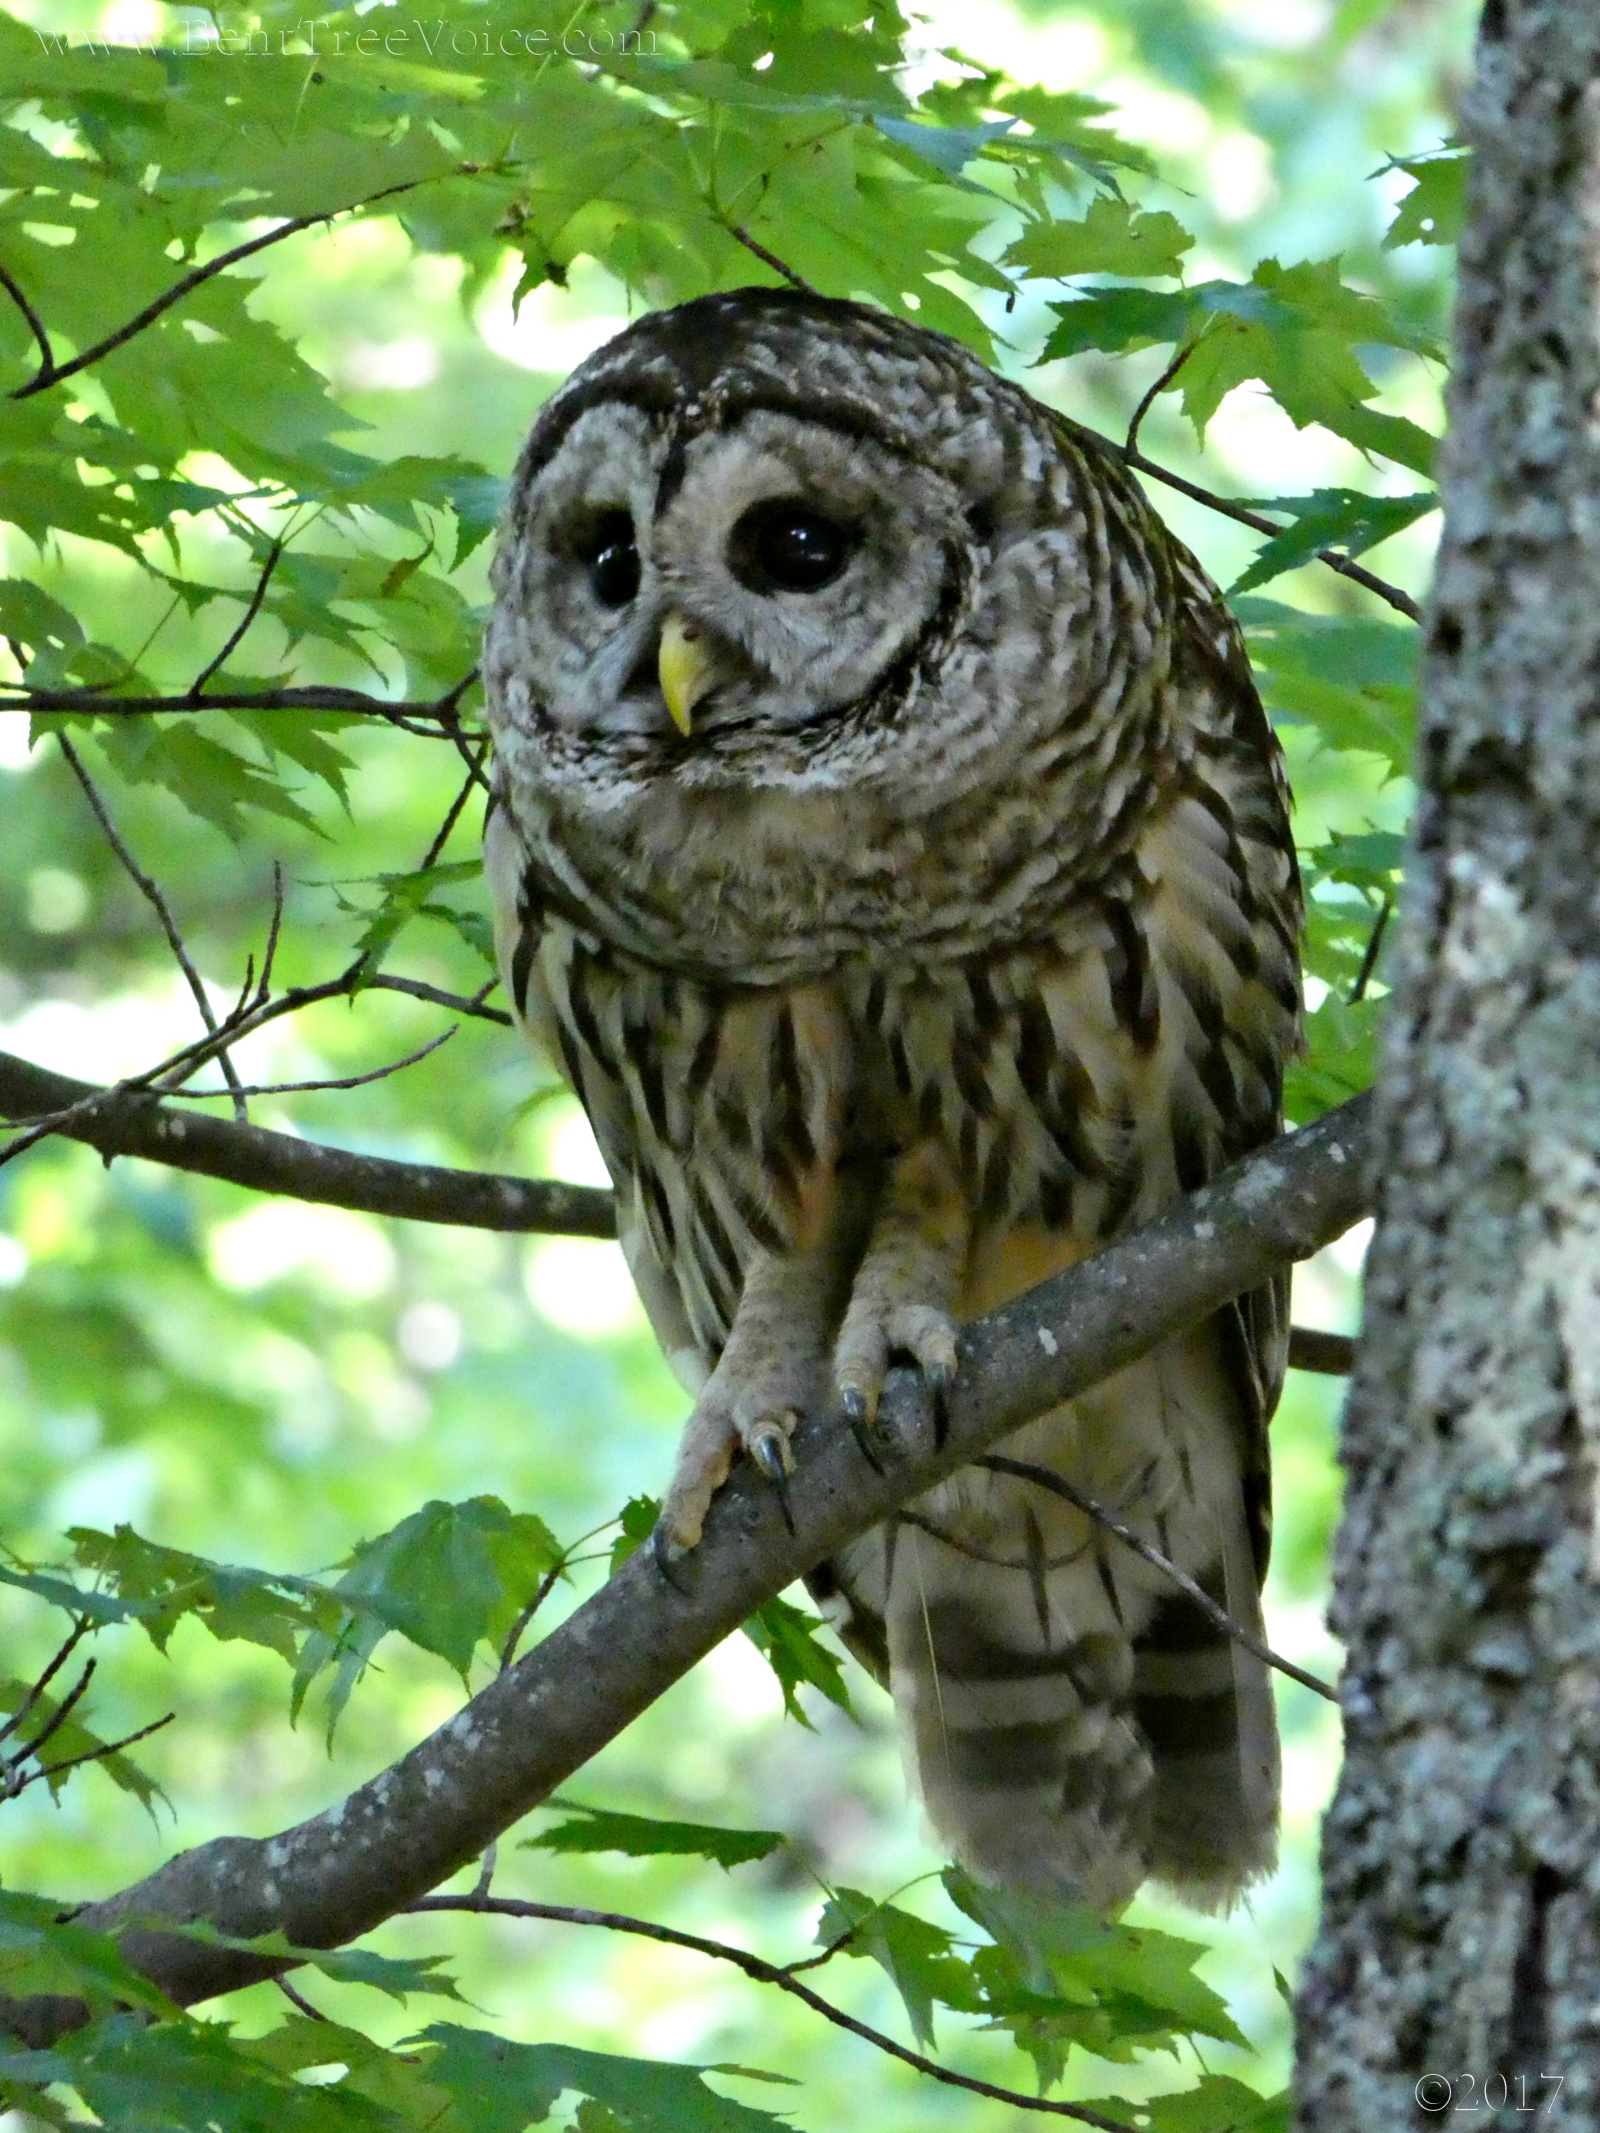 May 18, 2017 - Barred Owl in Bent Tree